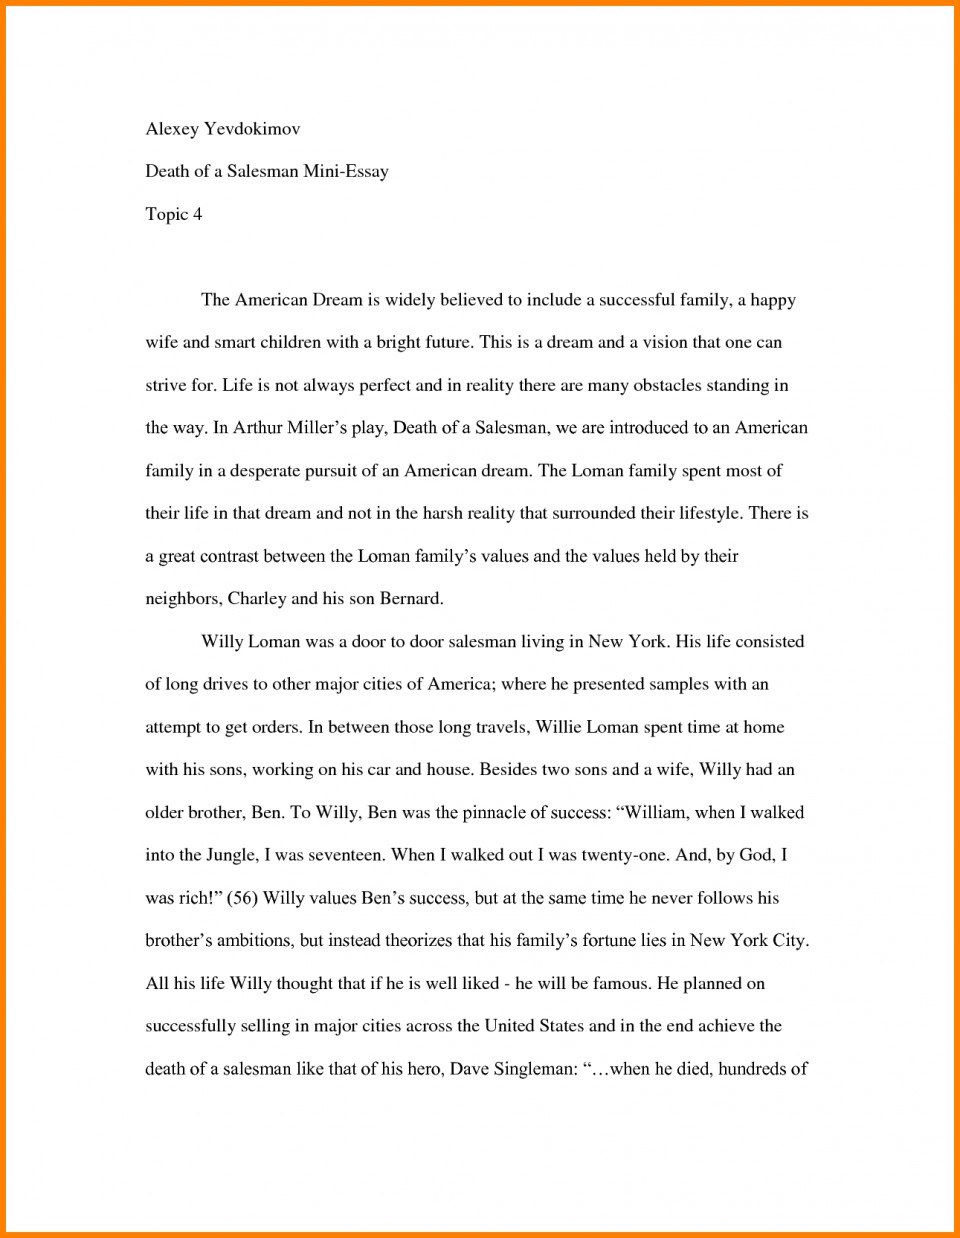 004 Essay Example How To Start Off An About Yourself Amazing With A Hook Quote Analysis On Book 960